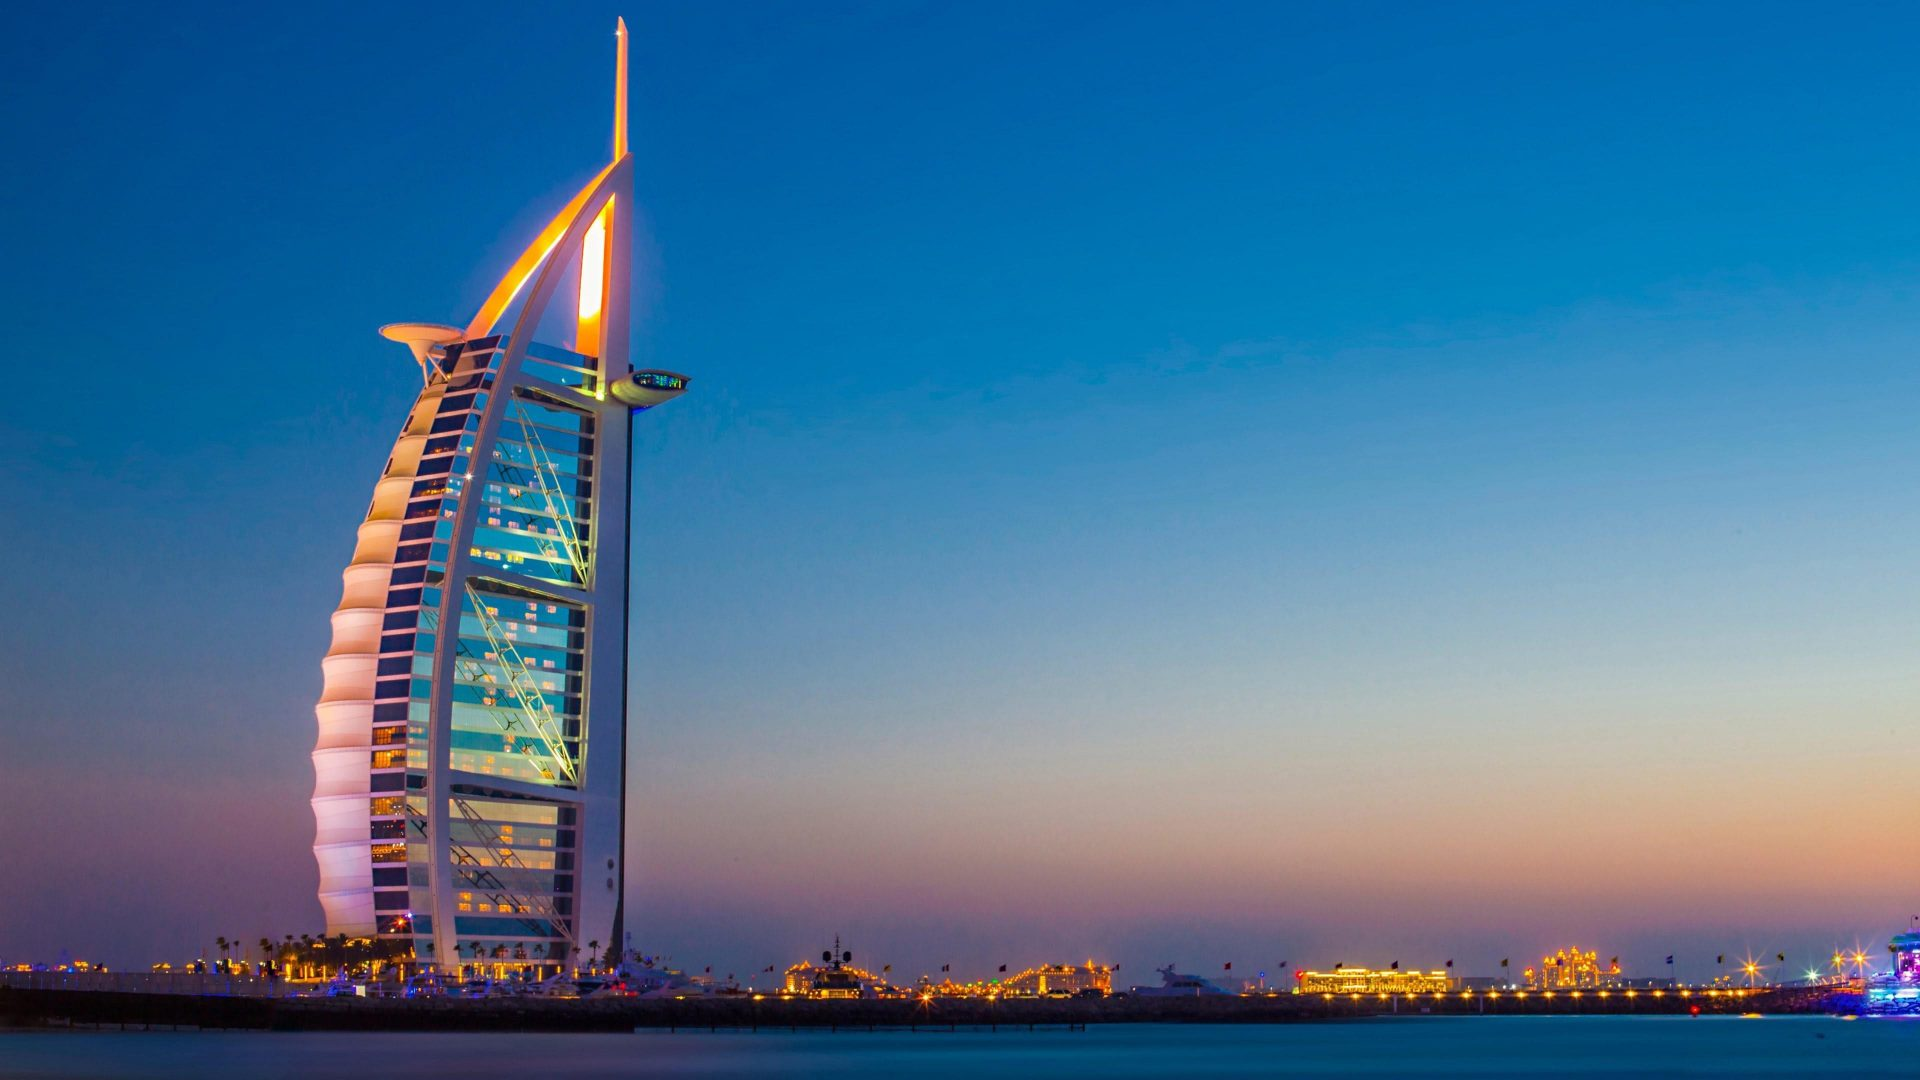 Burj Al Arab hotel-one of the world's most expensive hotels